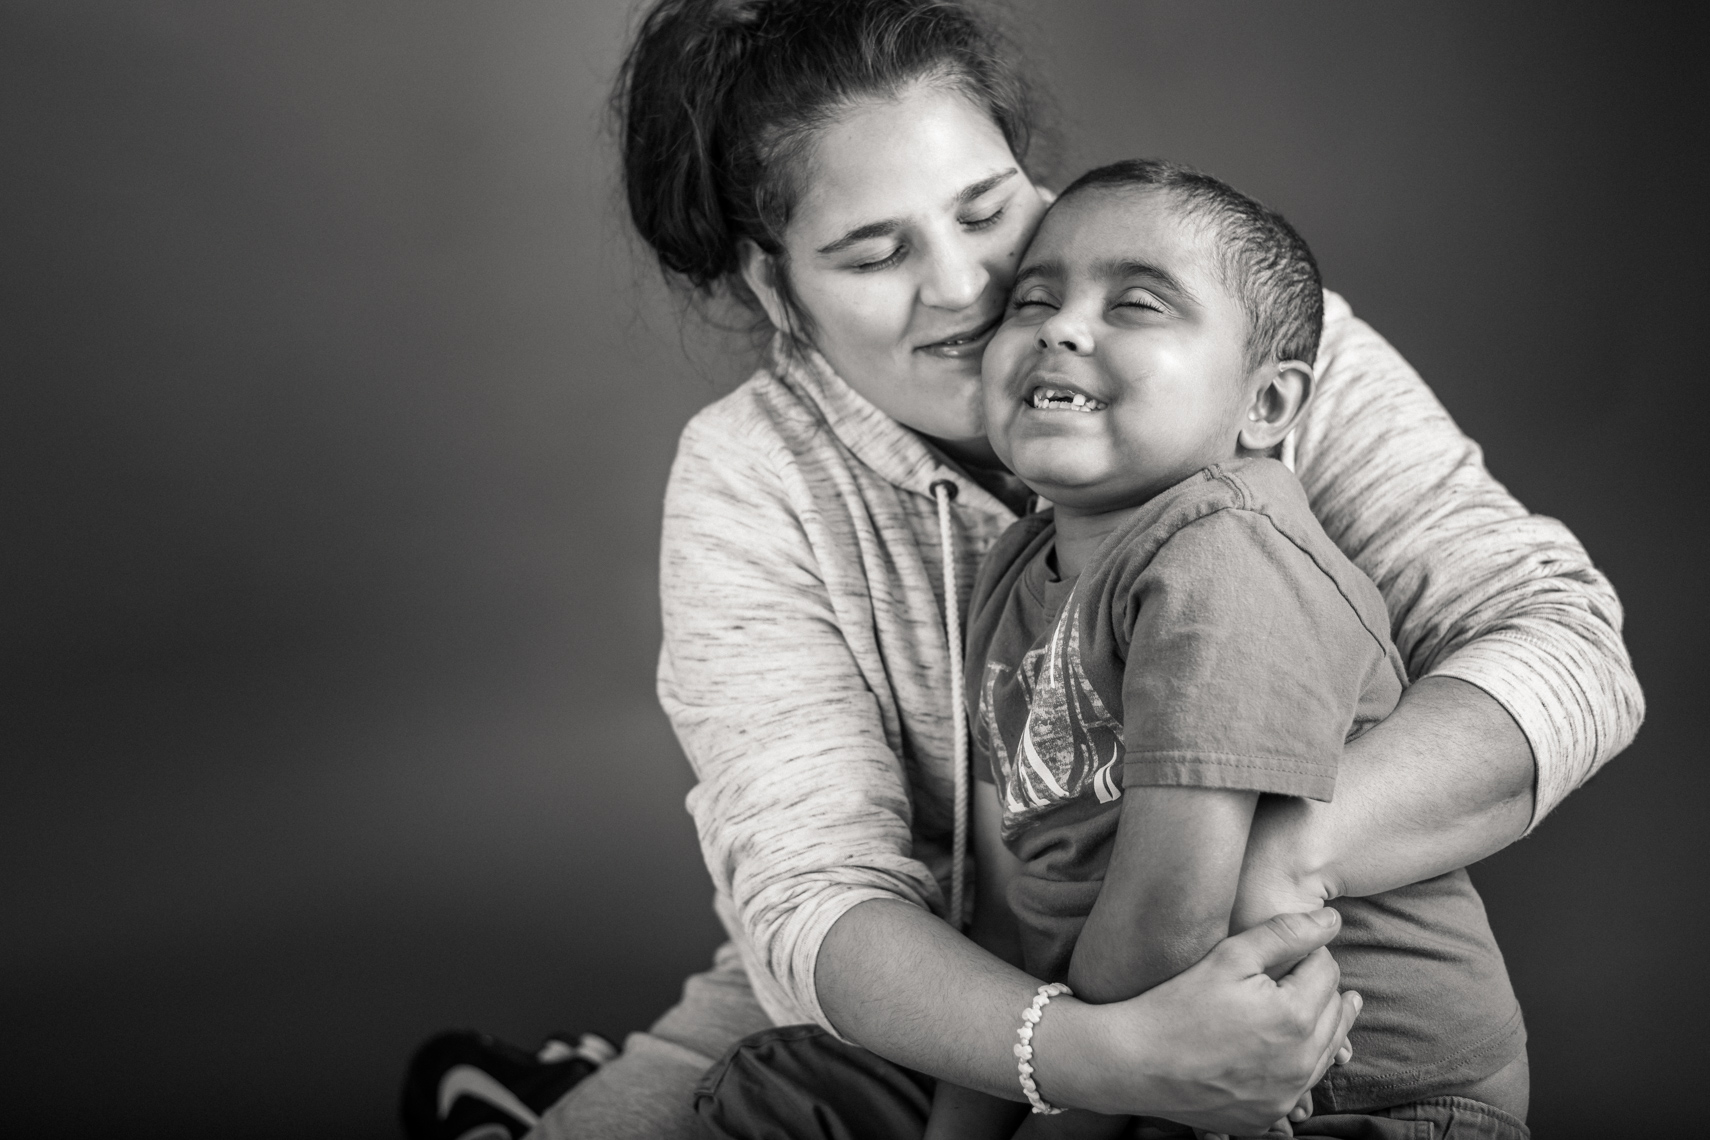 Flashes of Hope, portrait of a young boy batting cancer, being hugged by his mother. Family support, hug, loving, warm, together, resilience, authentic, love, Nashville, portrait, editorial, reportage, news, photographer, portraiture